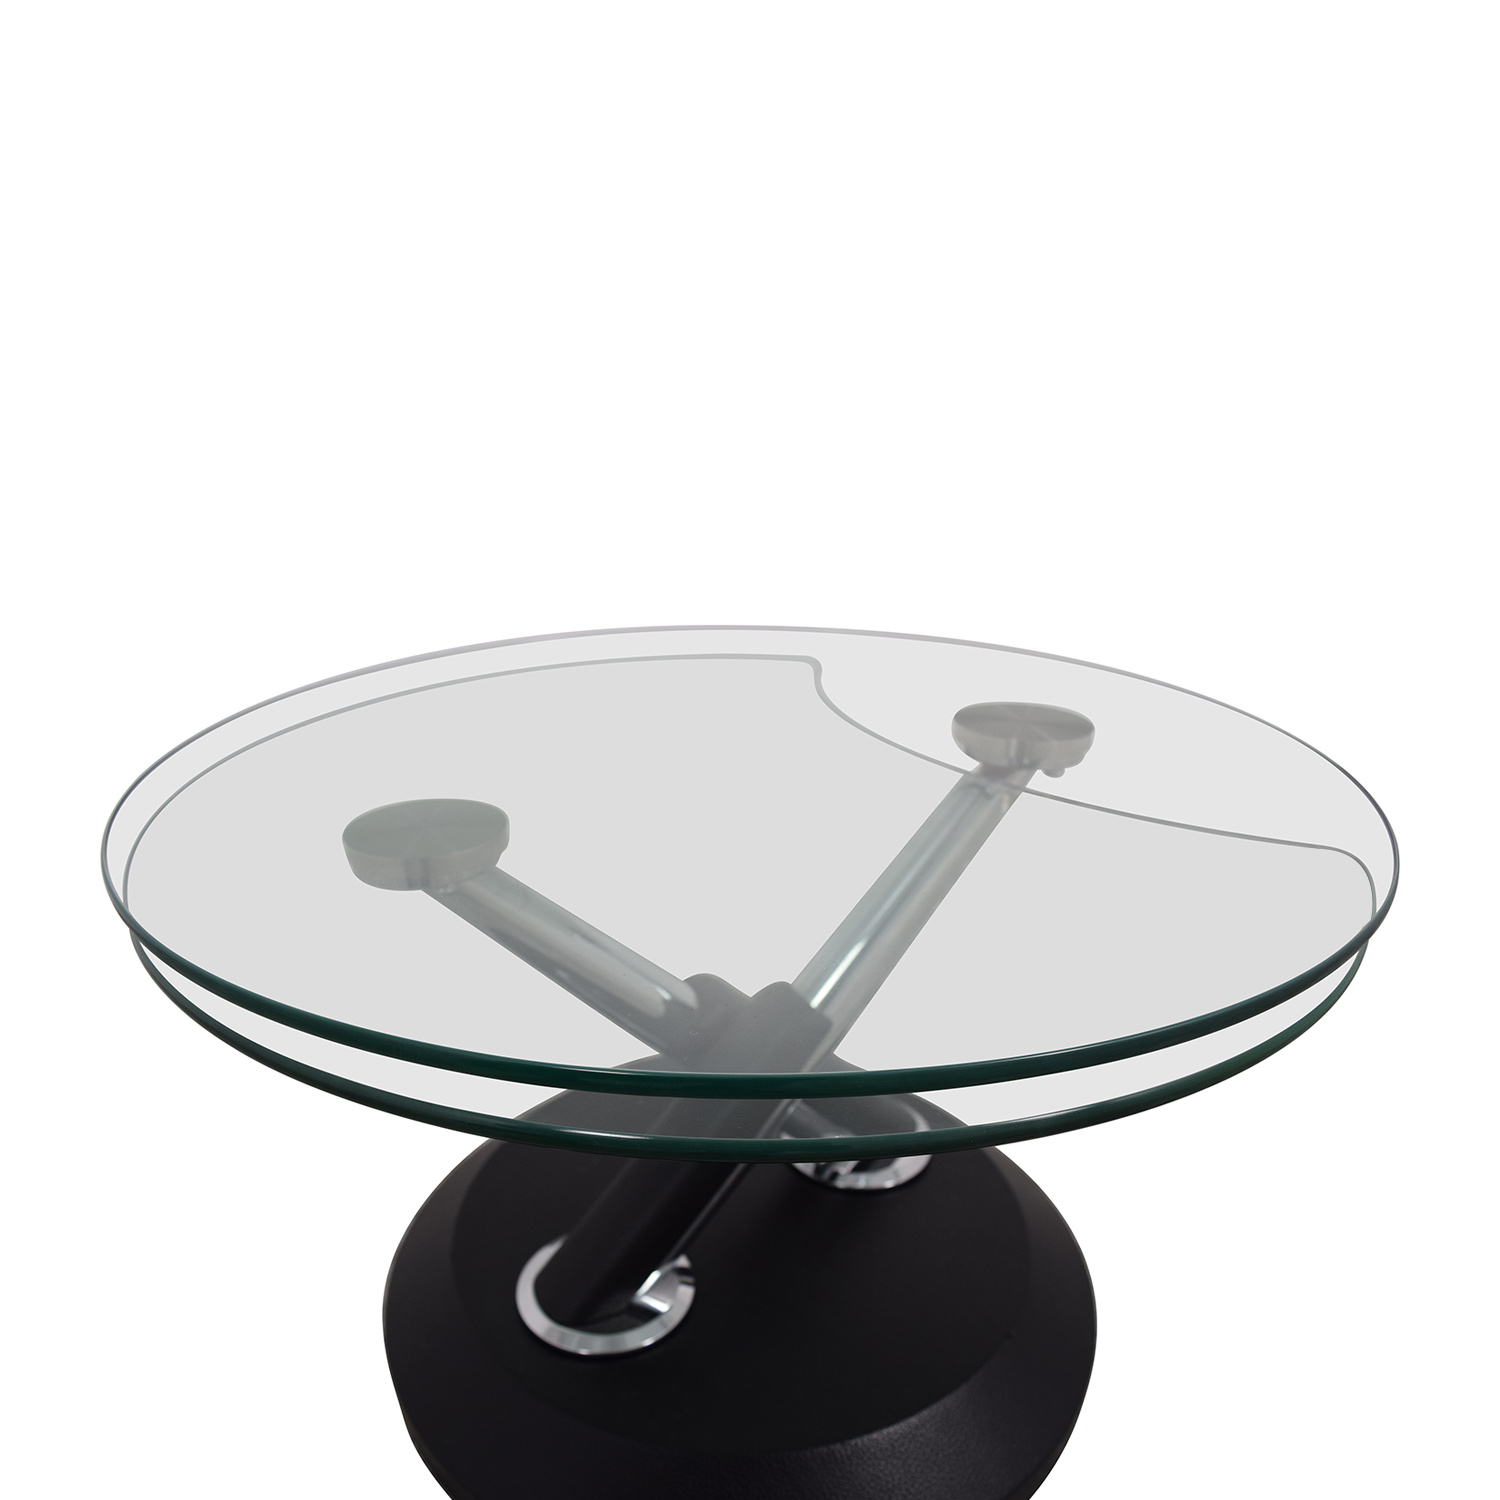 West Elm West Elm Glass Swivel Coffee Table price